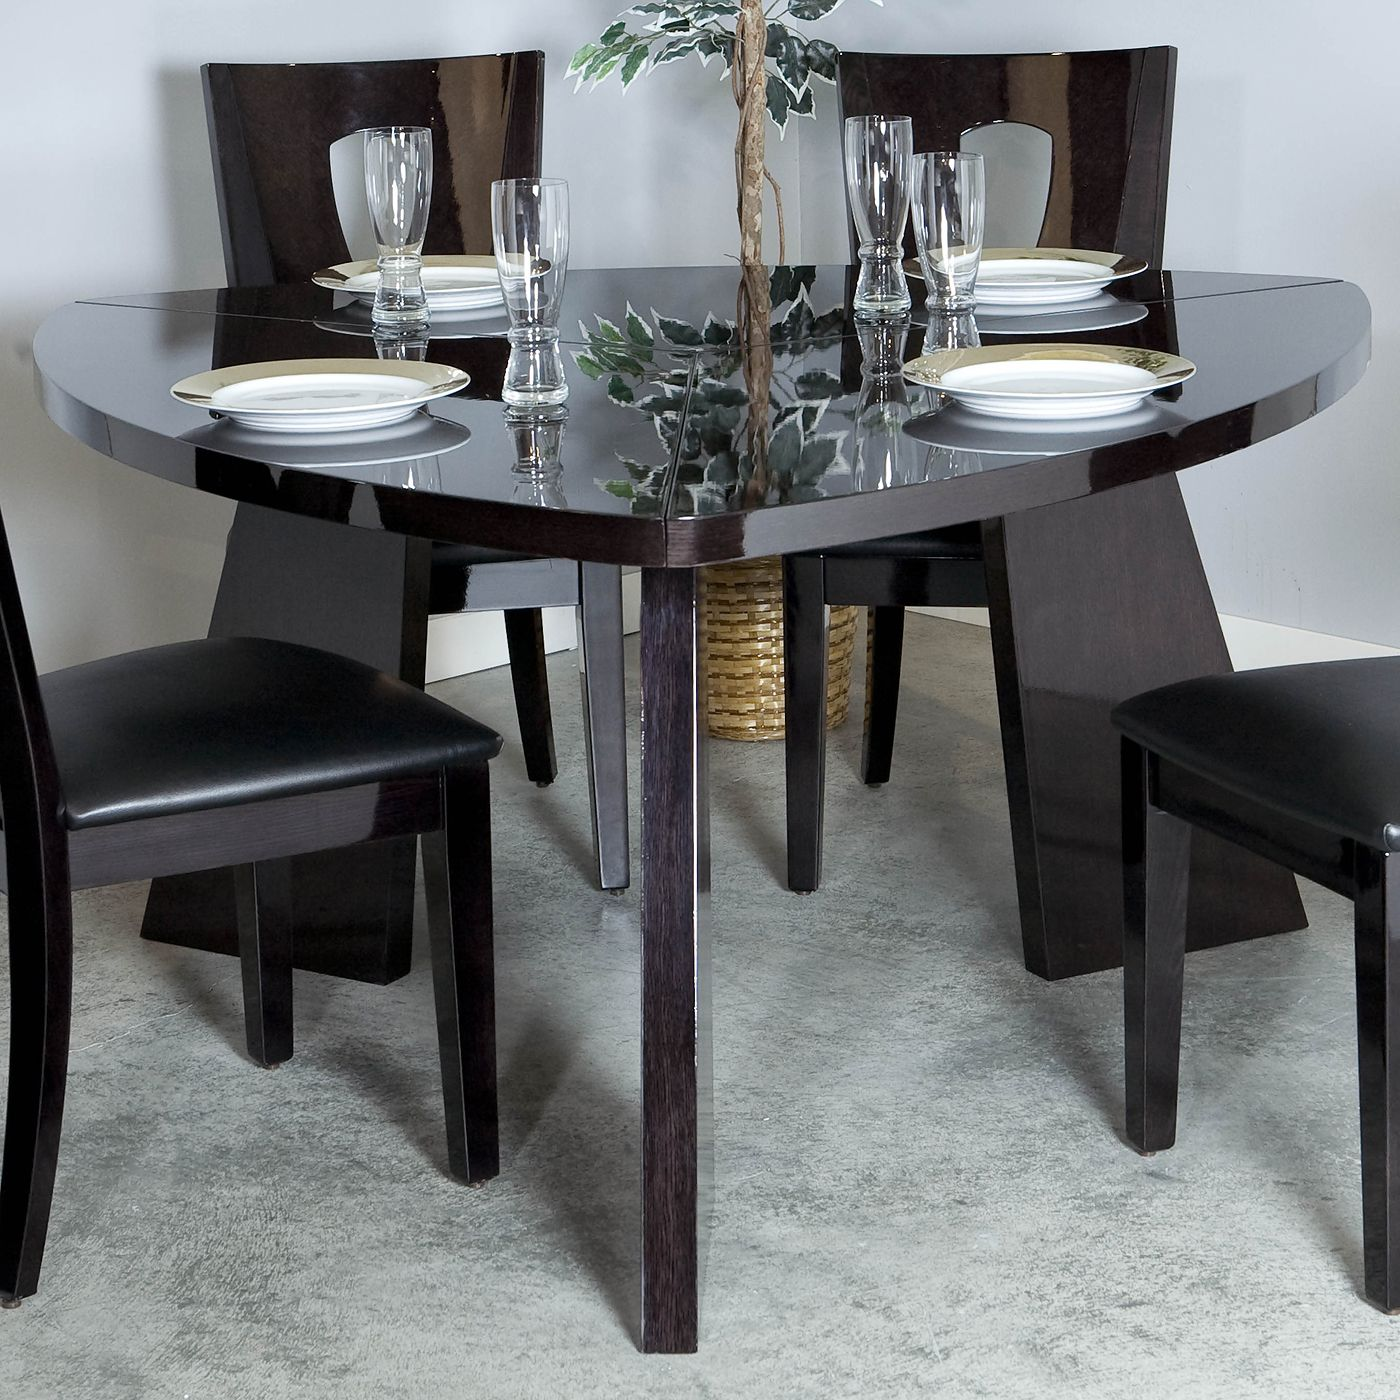 najarian furniture dtari ariana triangle table home furniture showroom